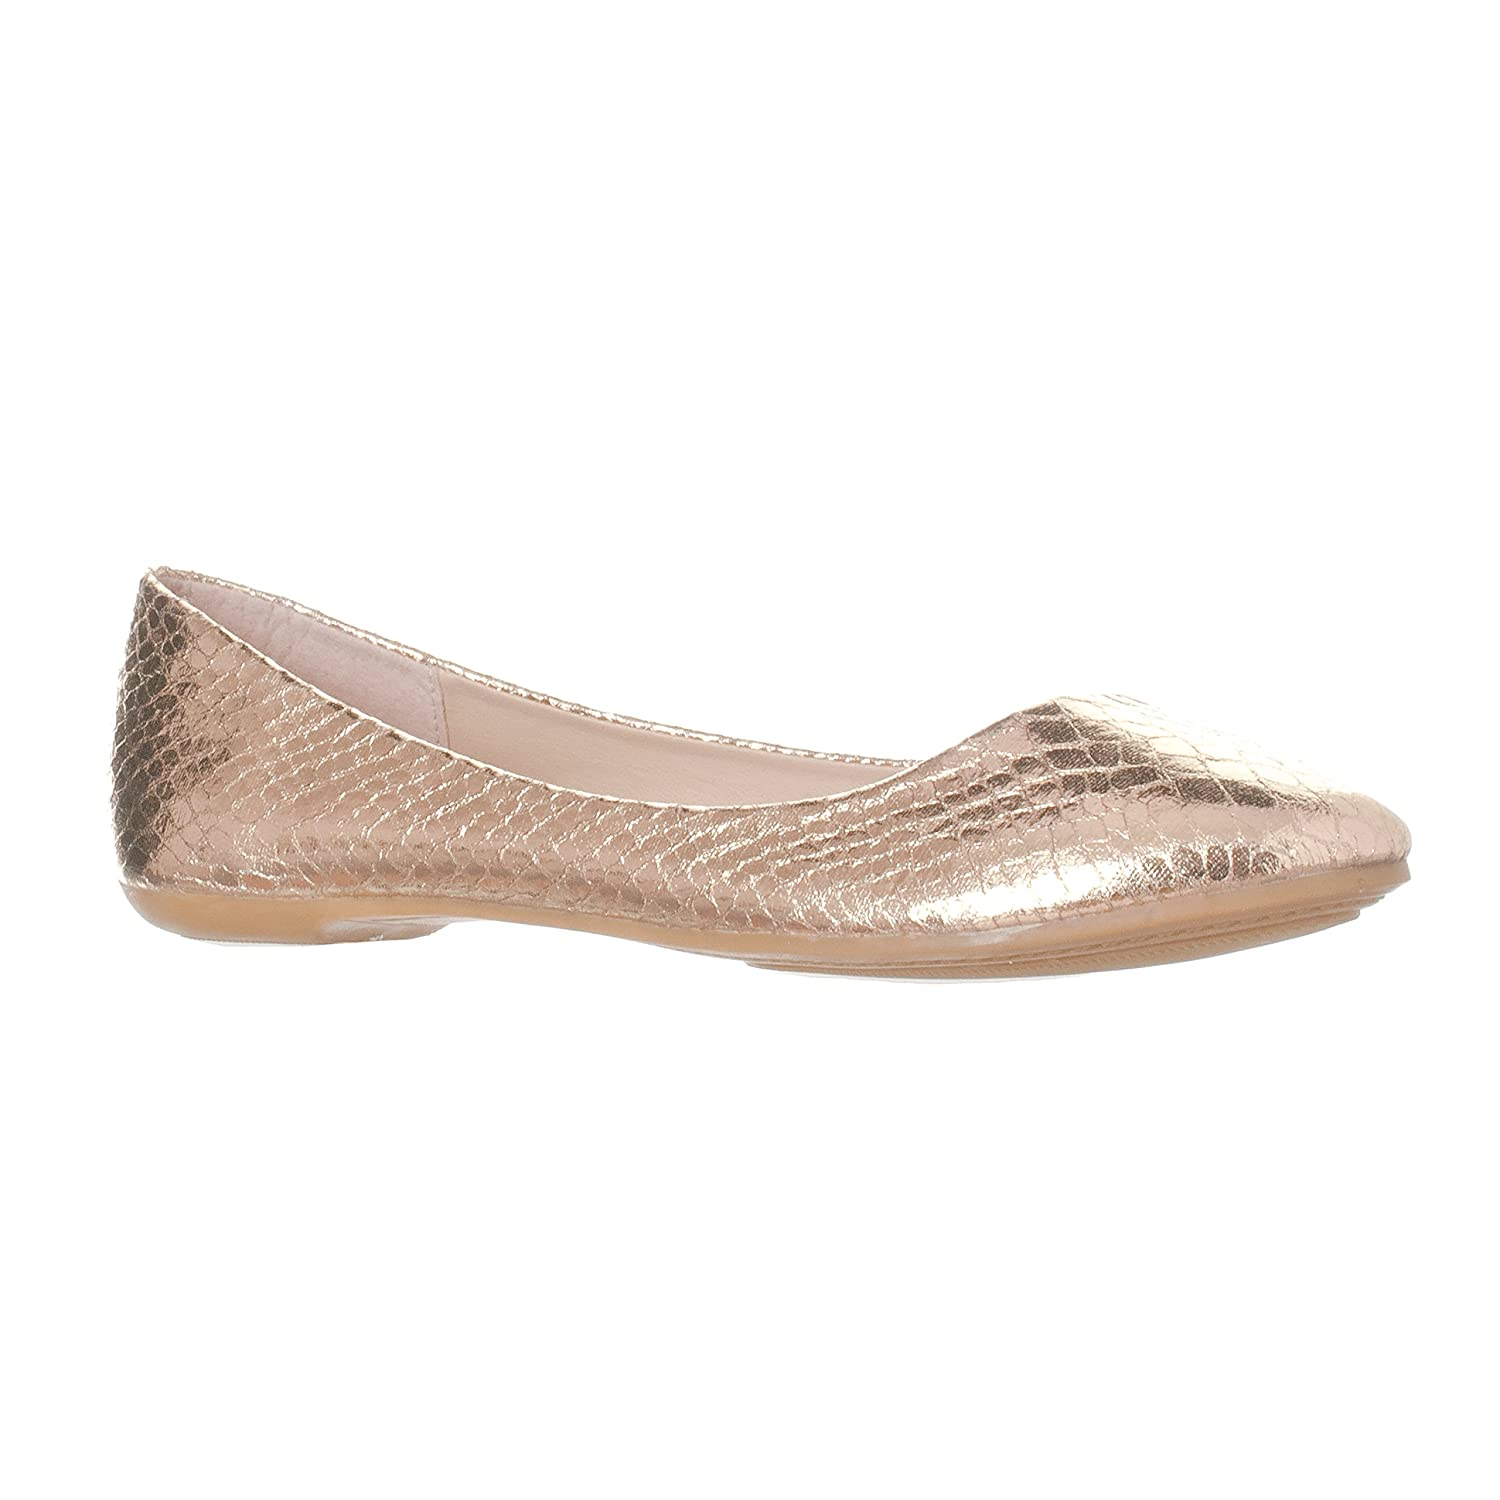 Riverberry Women's Aria Closed, Round Toe Ballet Flat Slip On Shoes B017CC3K6E 9 M US|Gold Snake